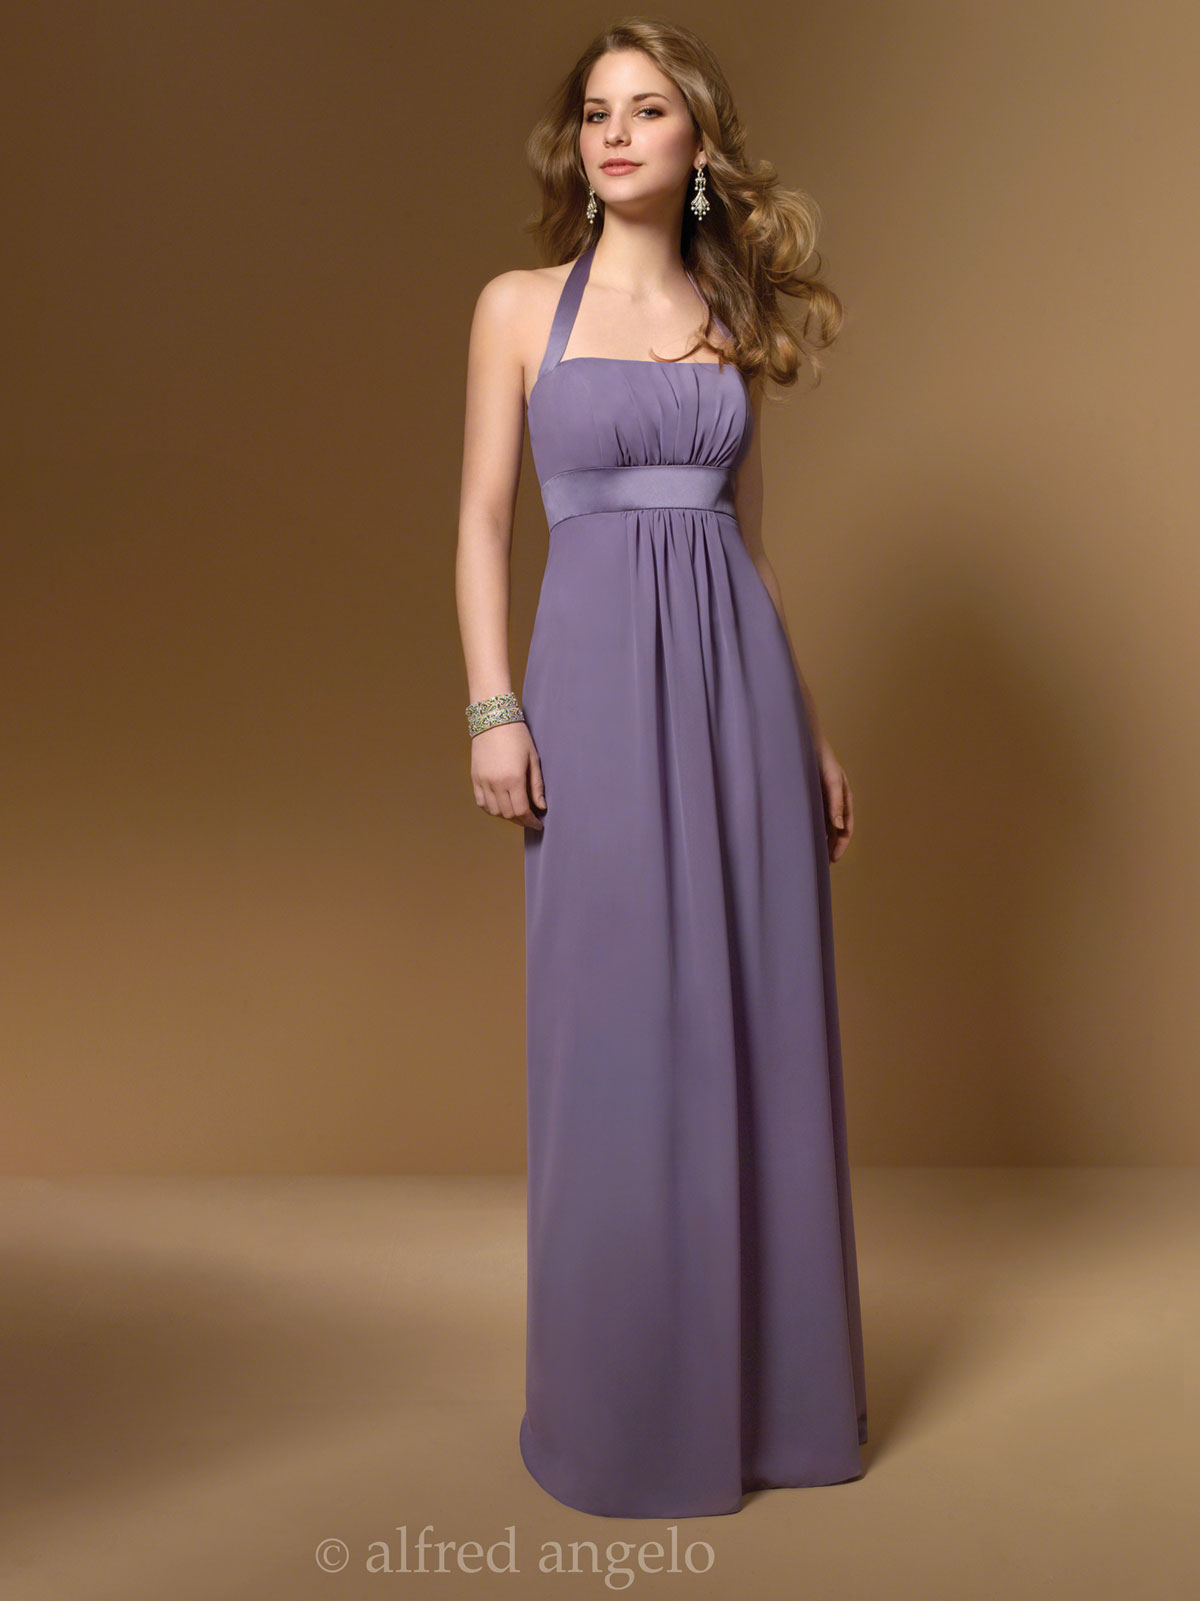 Halter bridesmaid dress alfred angelo 7016 dimitradesigns halter a line bridesmaid dress alfred angelo 7016 ombrellifo Gallery